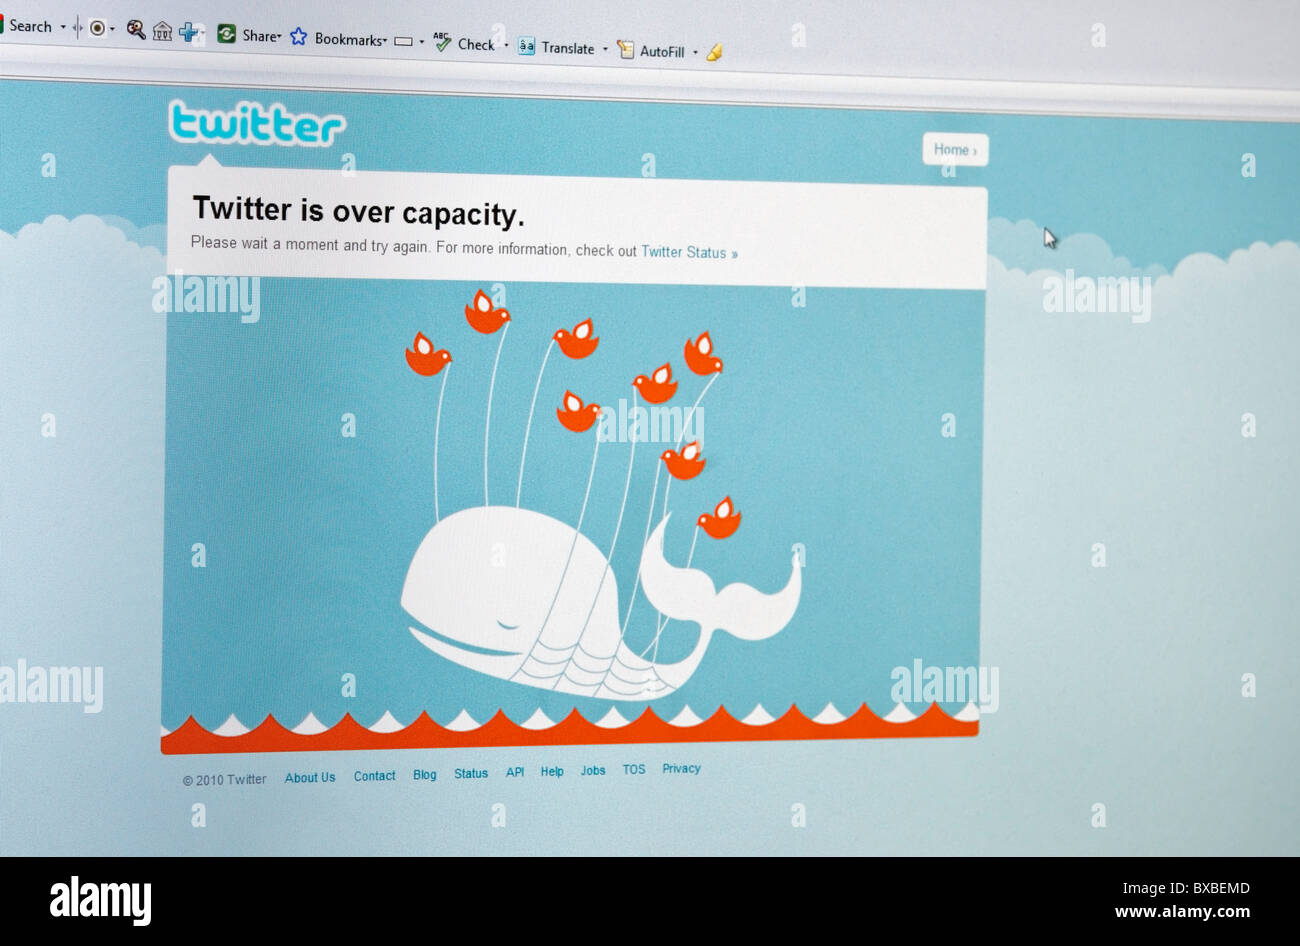 Twitter is over capacity message on computer screen and 'fail whale' error message. FOR EDITORIAL USE ONLY - Stock Image